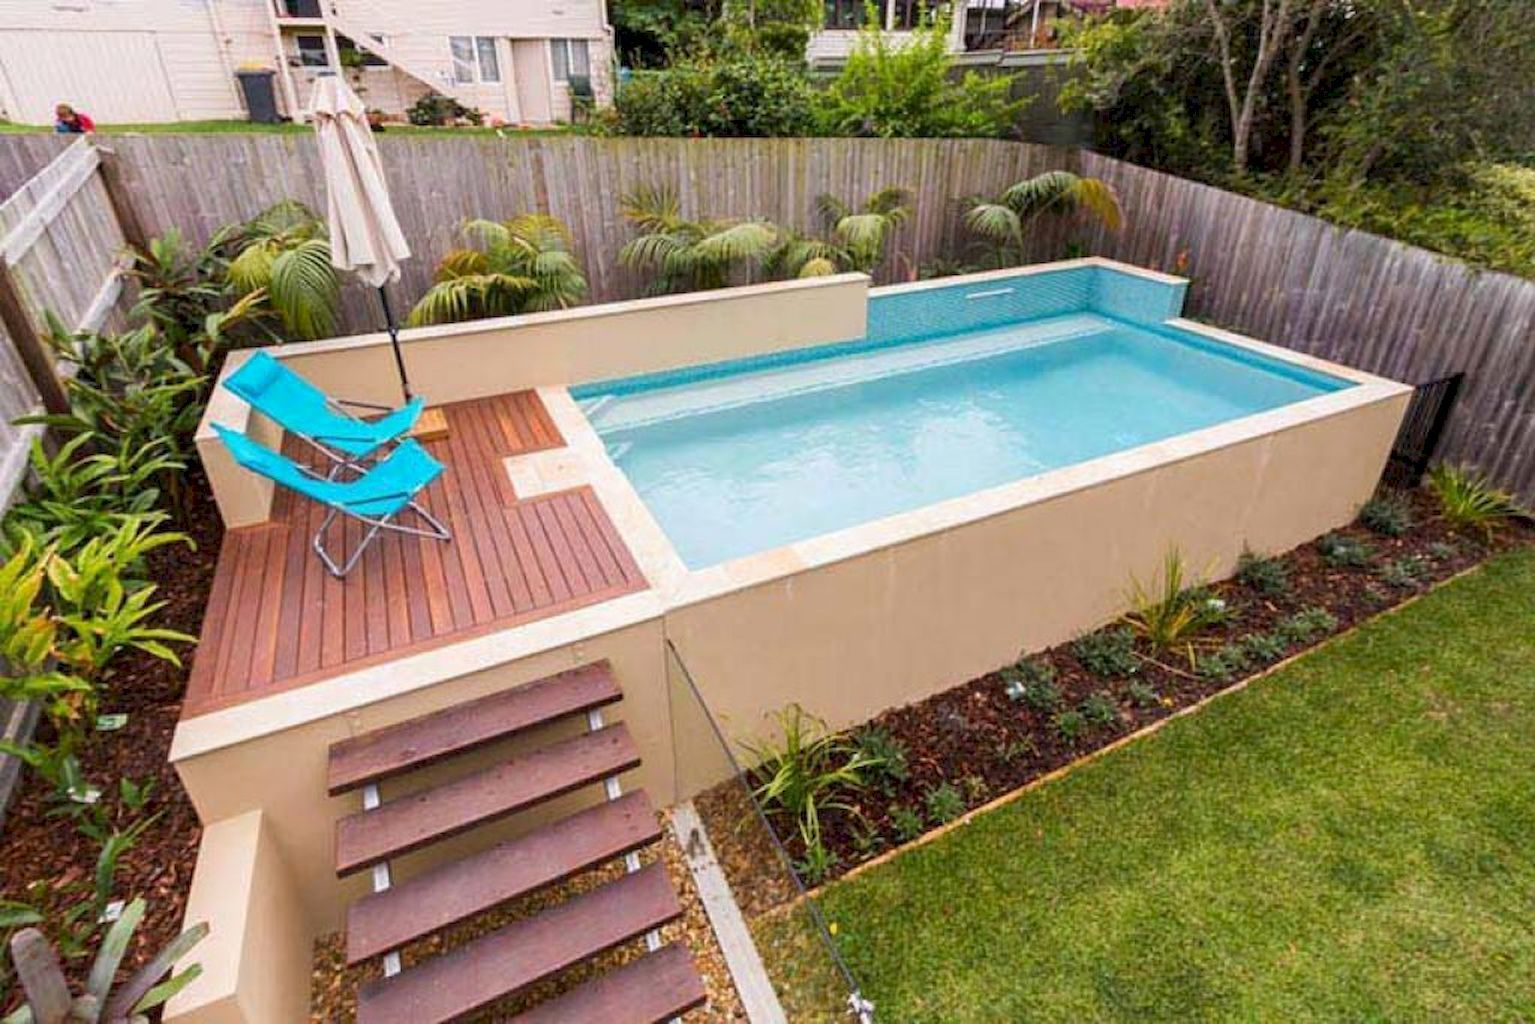 Swimming pool ideas for a small backyard 20   Small pool design ...